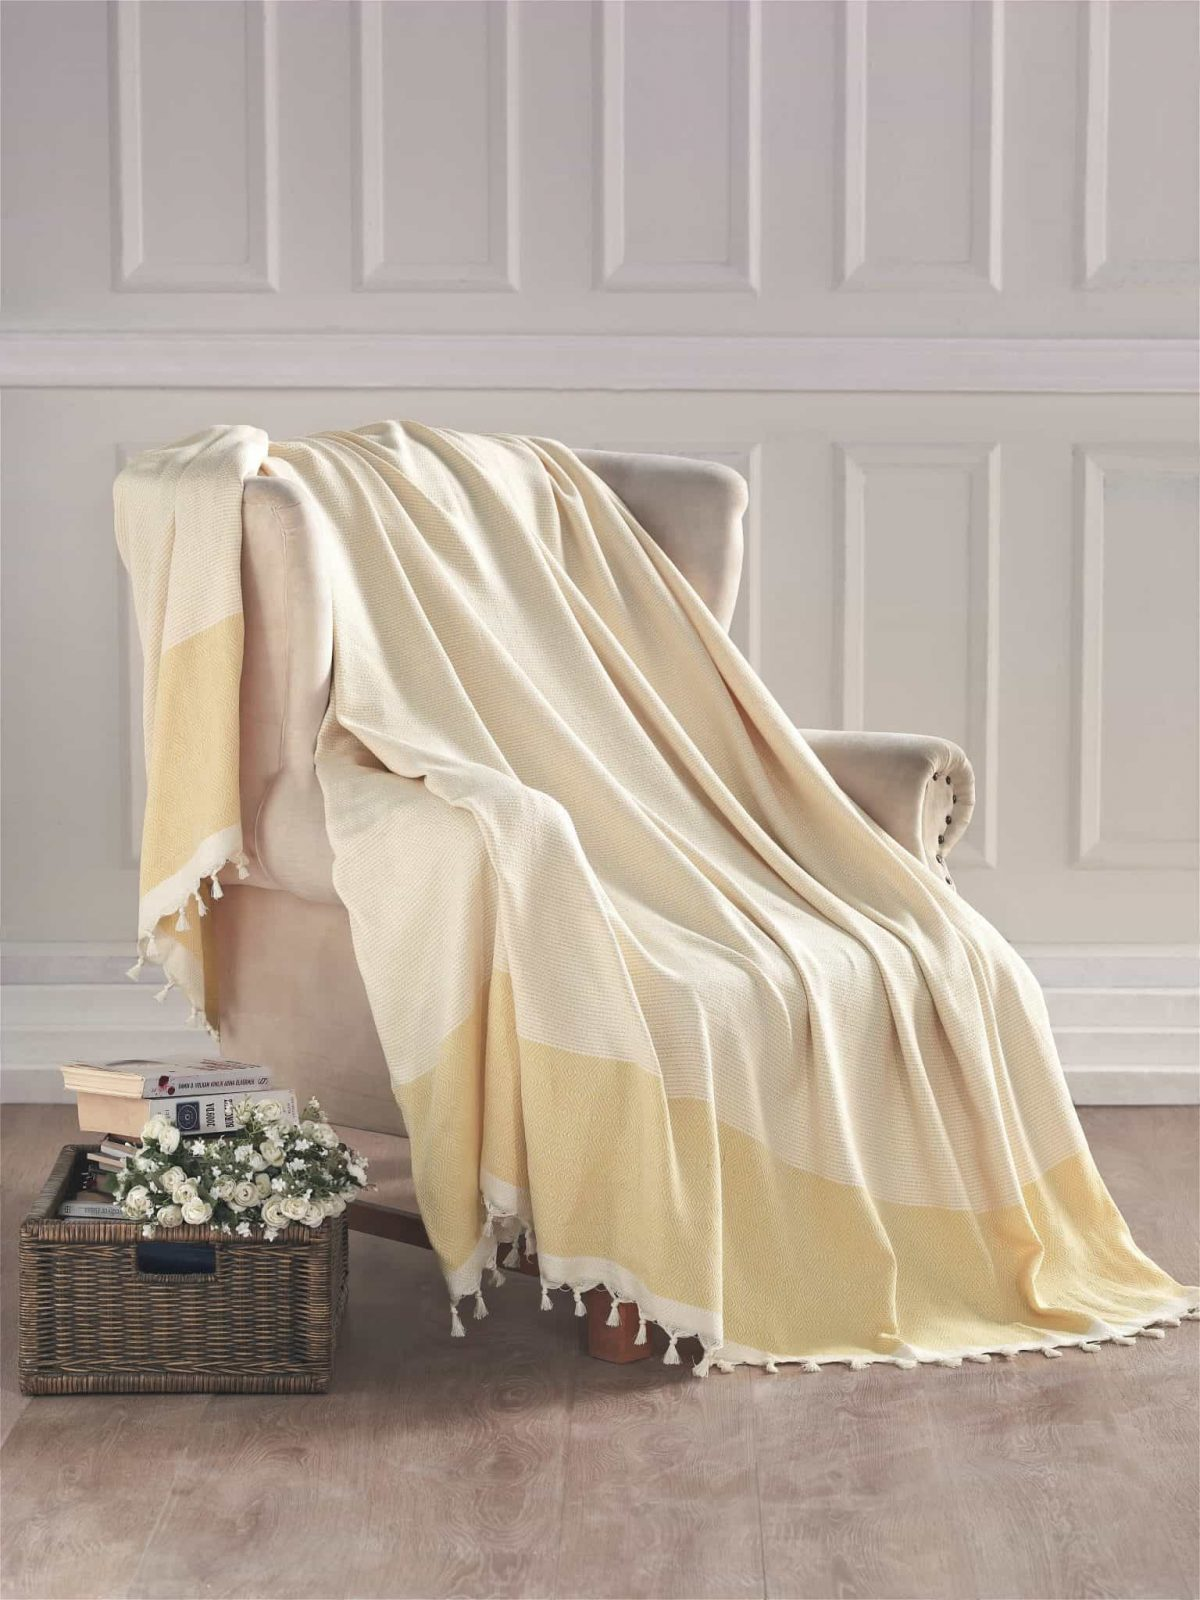 Enchante Home Diamente Throws and Towels, Cotton Turkish Towels and Bath Towels. Best Towels Shopping Store by Enchante Home